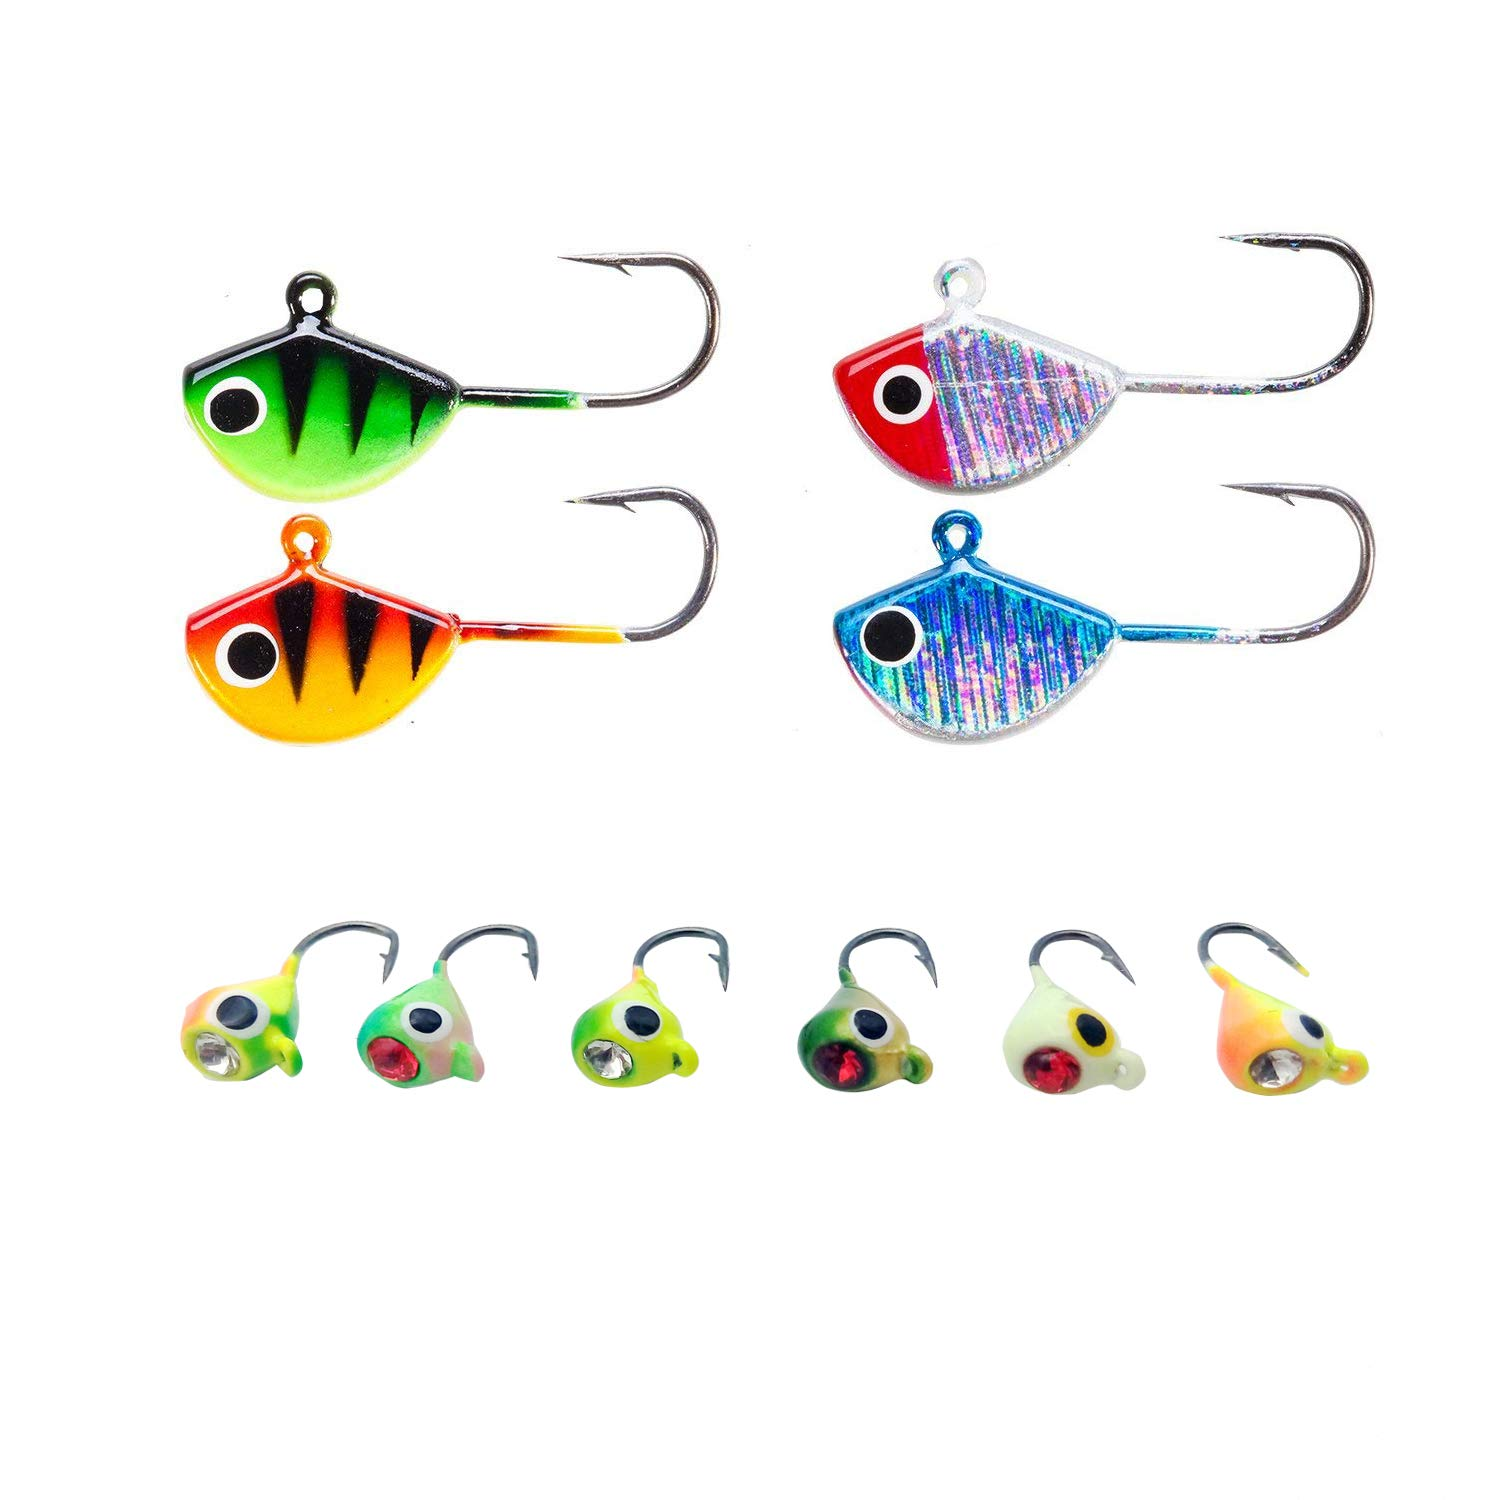 Amazon com : Basstrike Ice Fishing Jigs Lead Head Glow Jigs